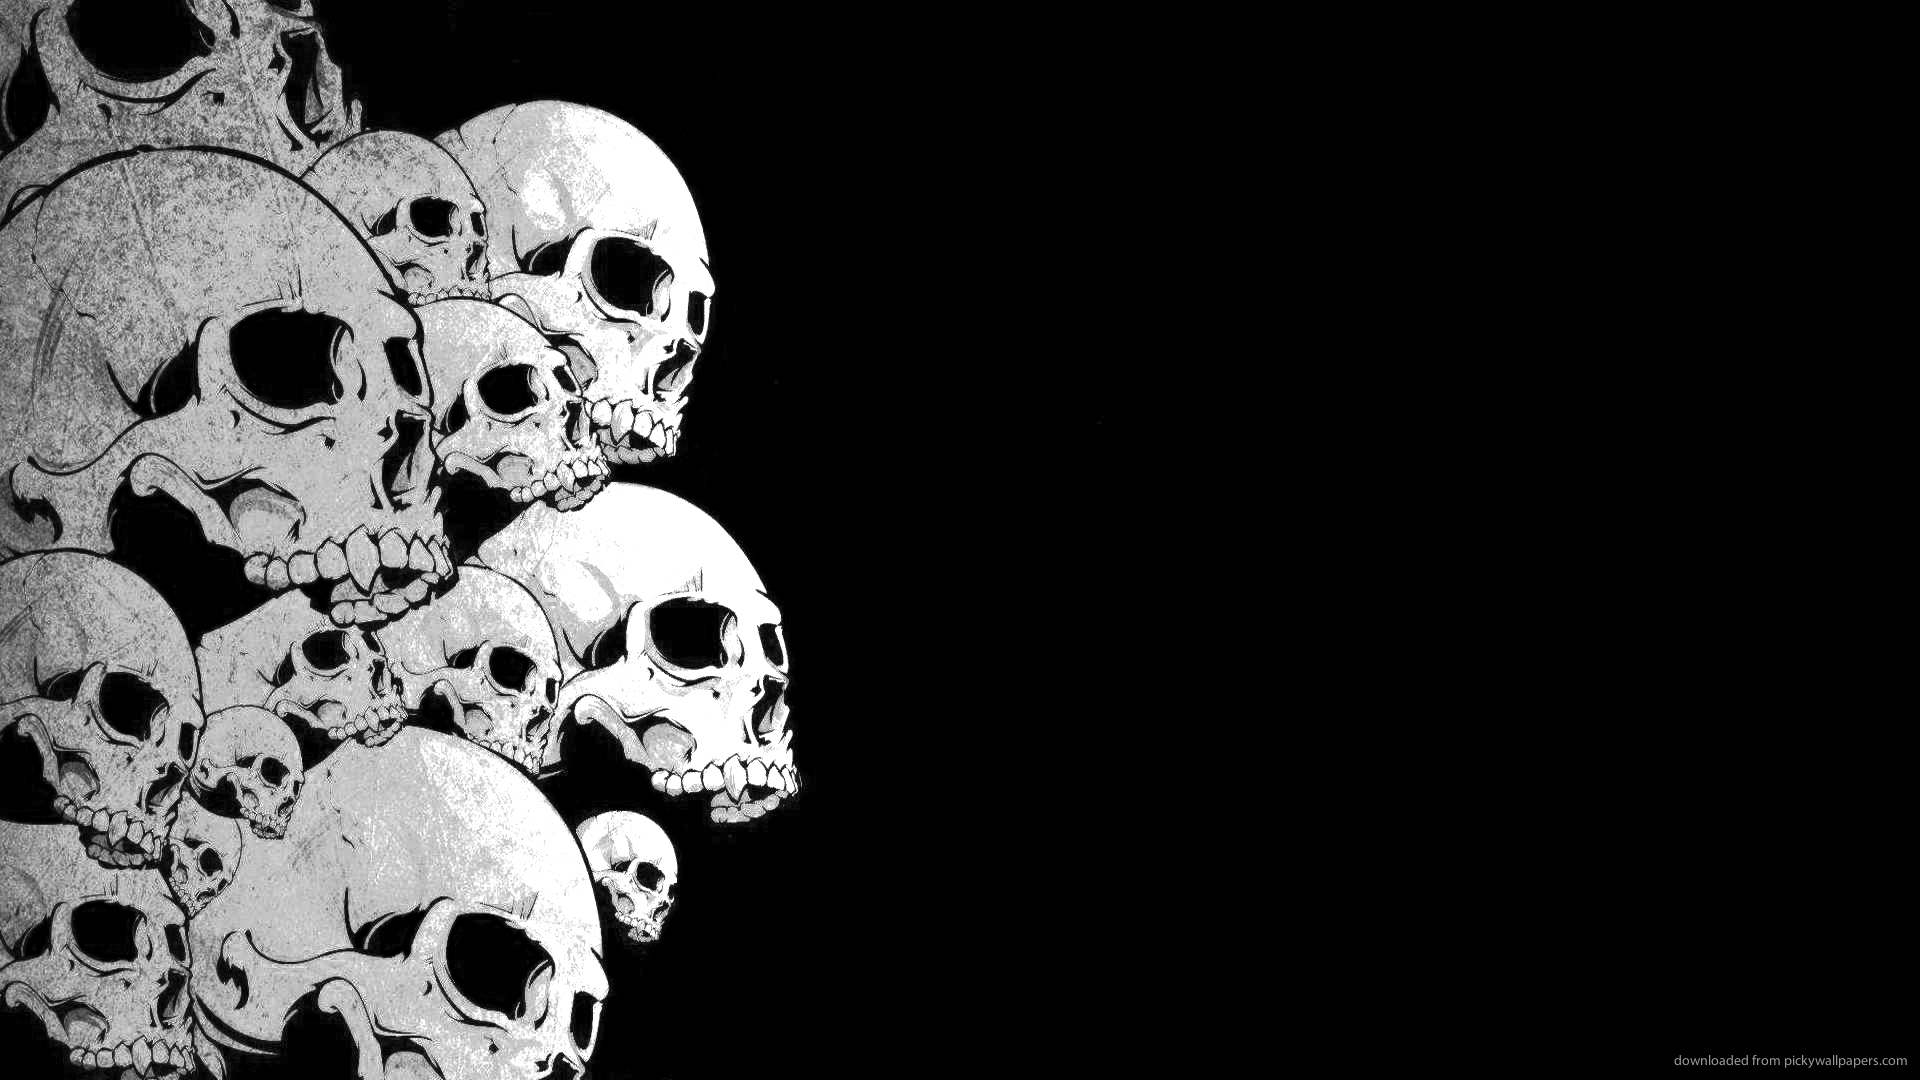 Pile Of Skulls Picture For iPhone Blackberry iPad A Pile Of Skulls 1920x1080